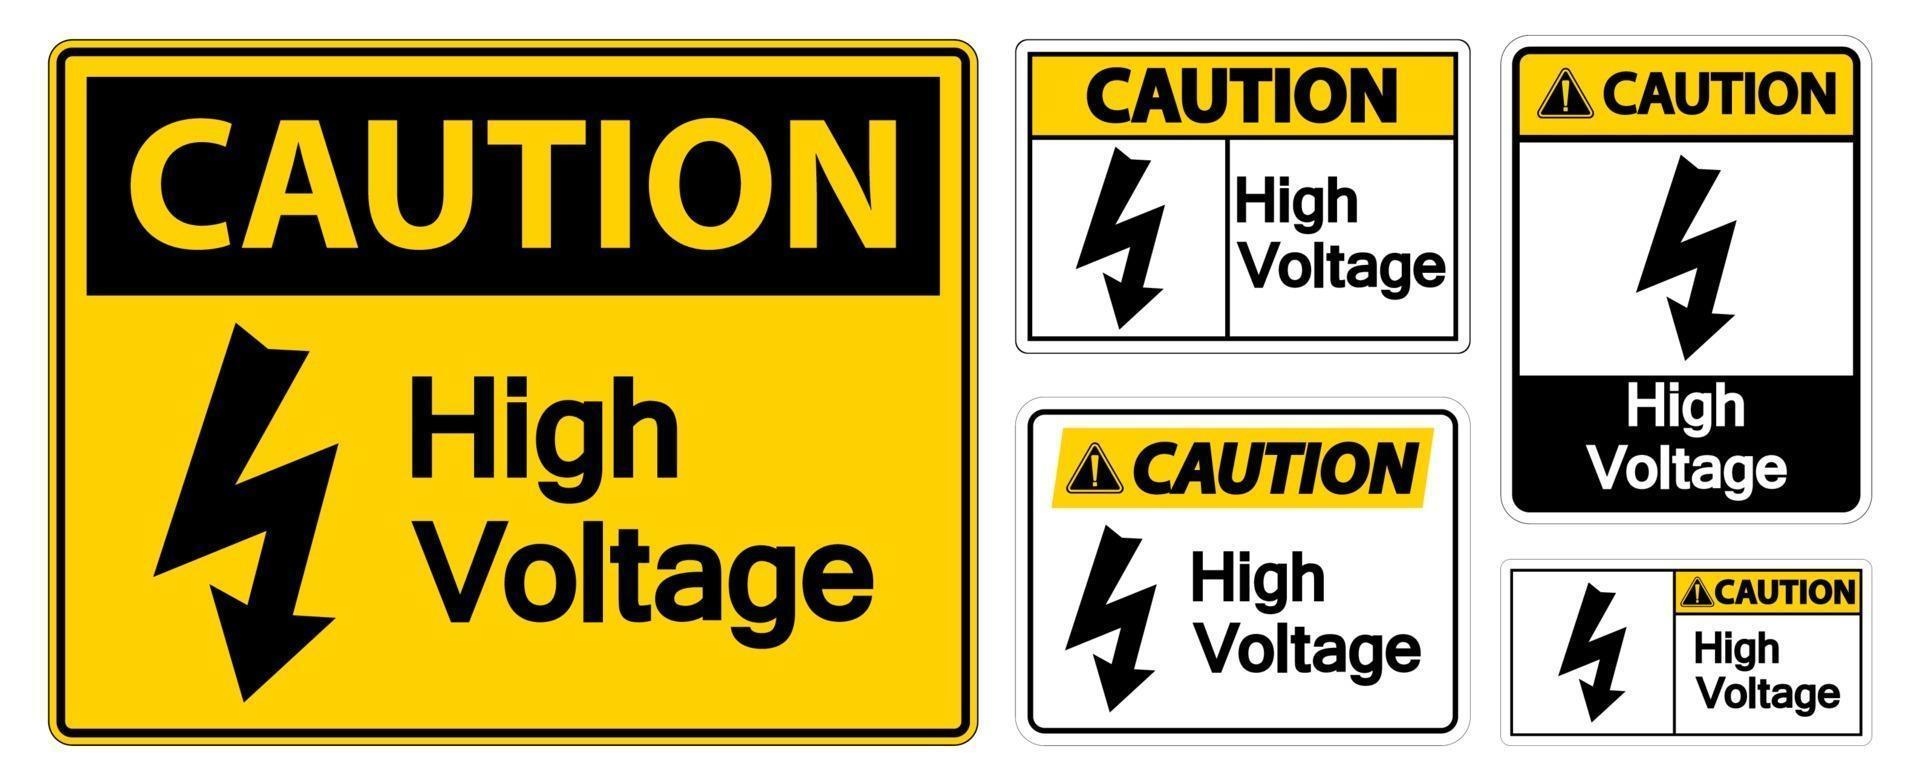 Caution High voltage Sign Isolate On White Background,Vector Illustration EPS.10 vector